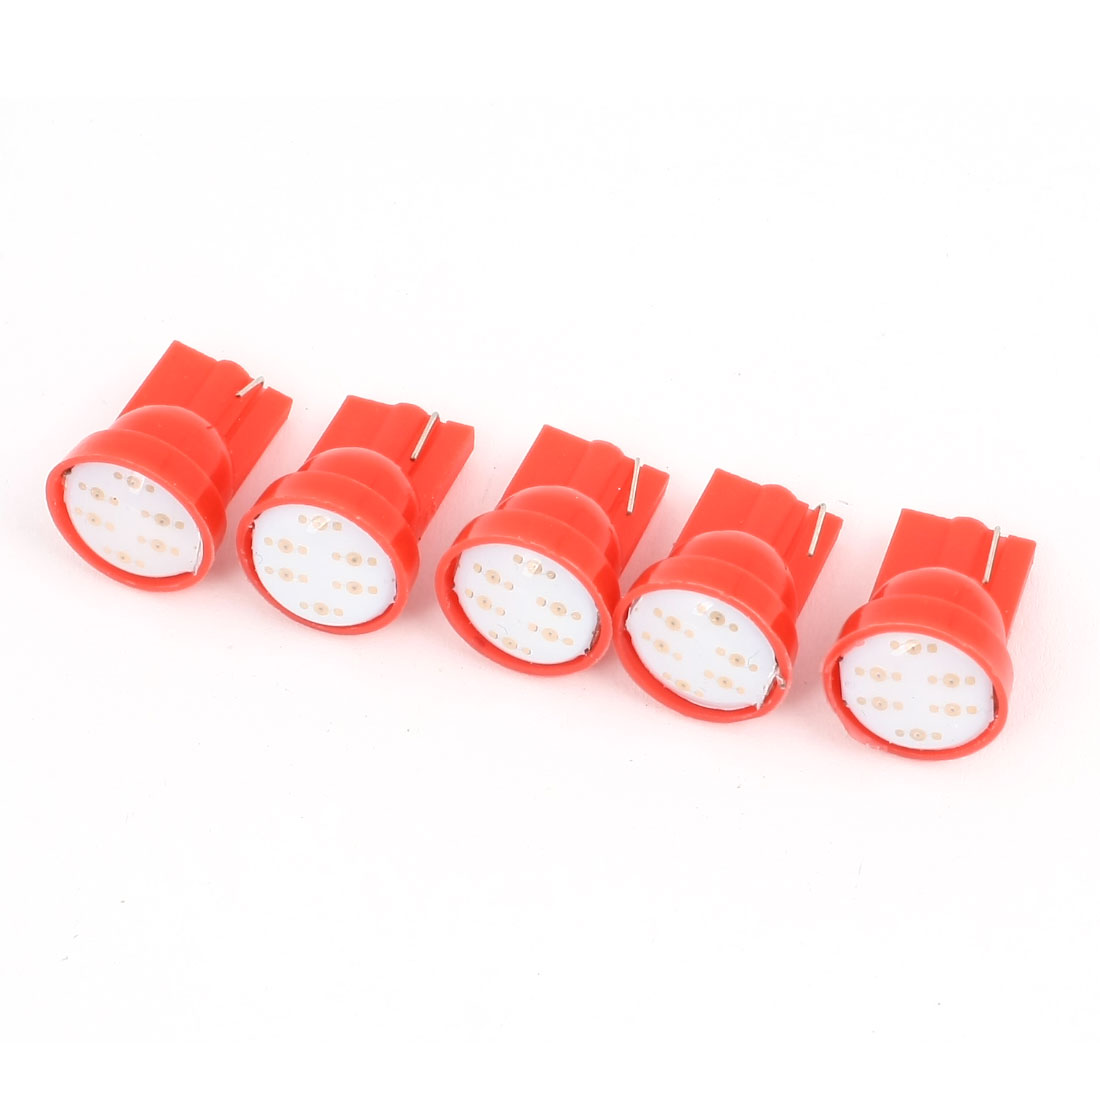 5 Pcs Red T10 LED 6 Clip COB Bulb Light Parking Backup Brake Tail Lamp